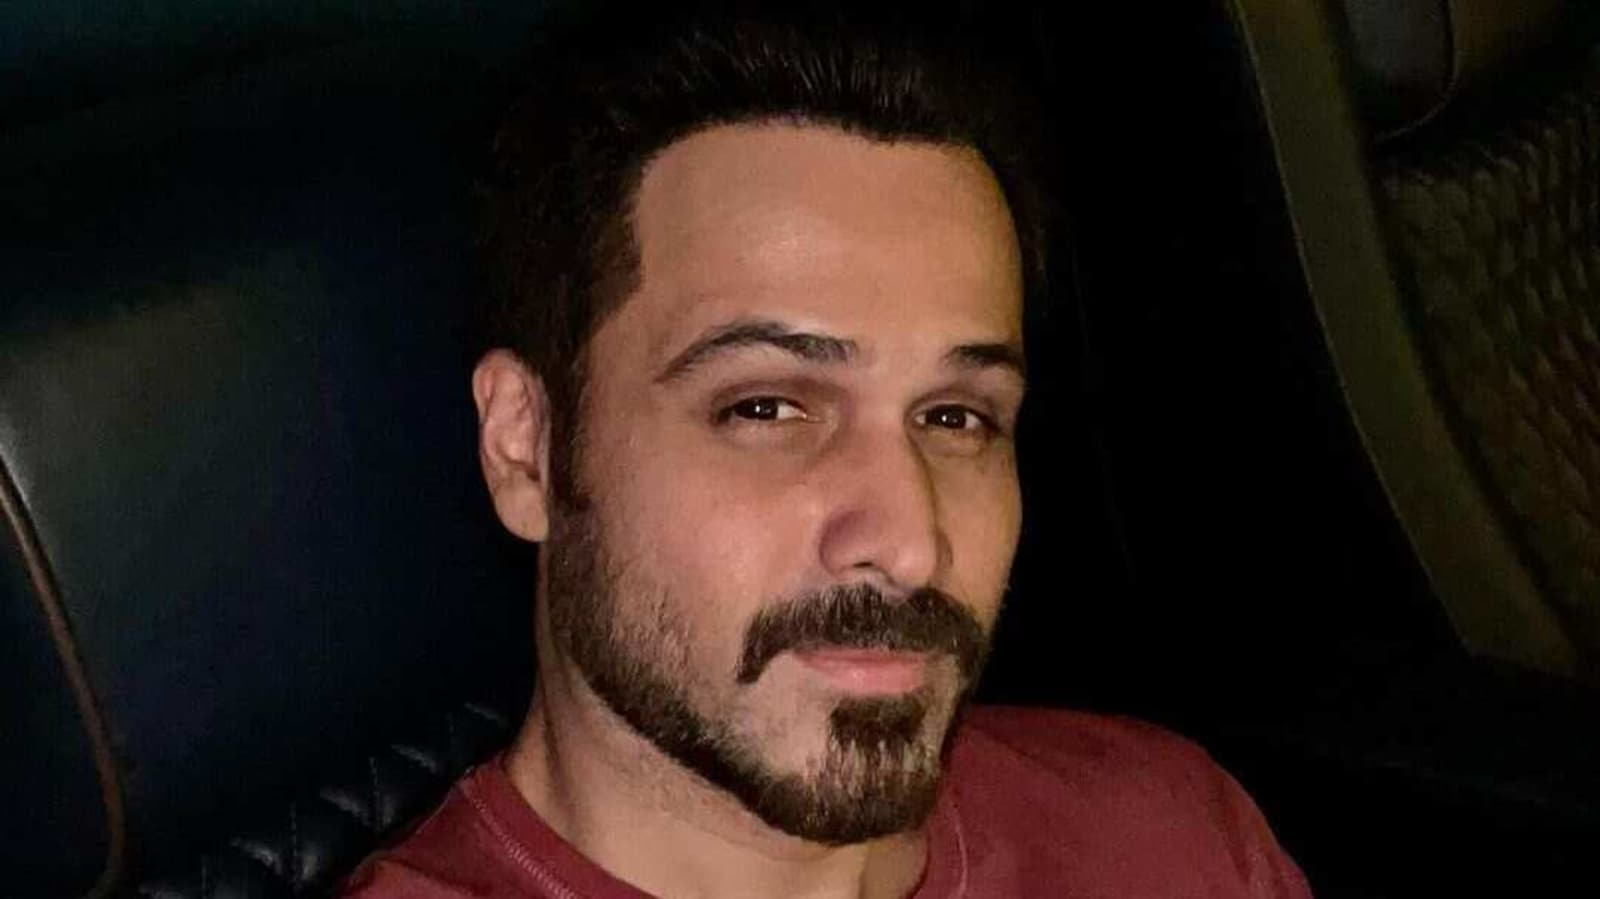 Emraan Hashmi calls Bollywood 'fake', explains his distance from the industry - Hindustan Times